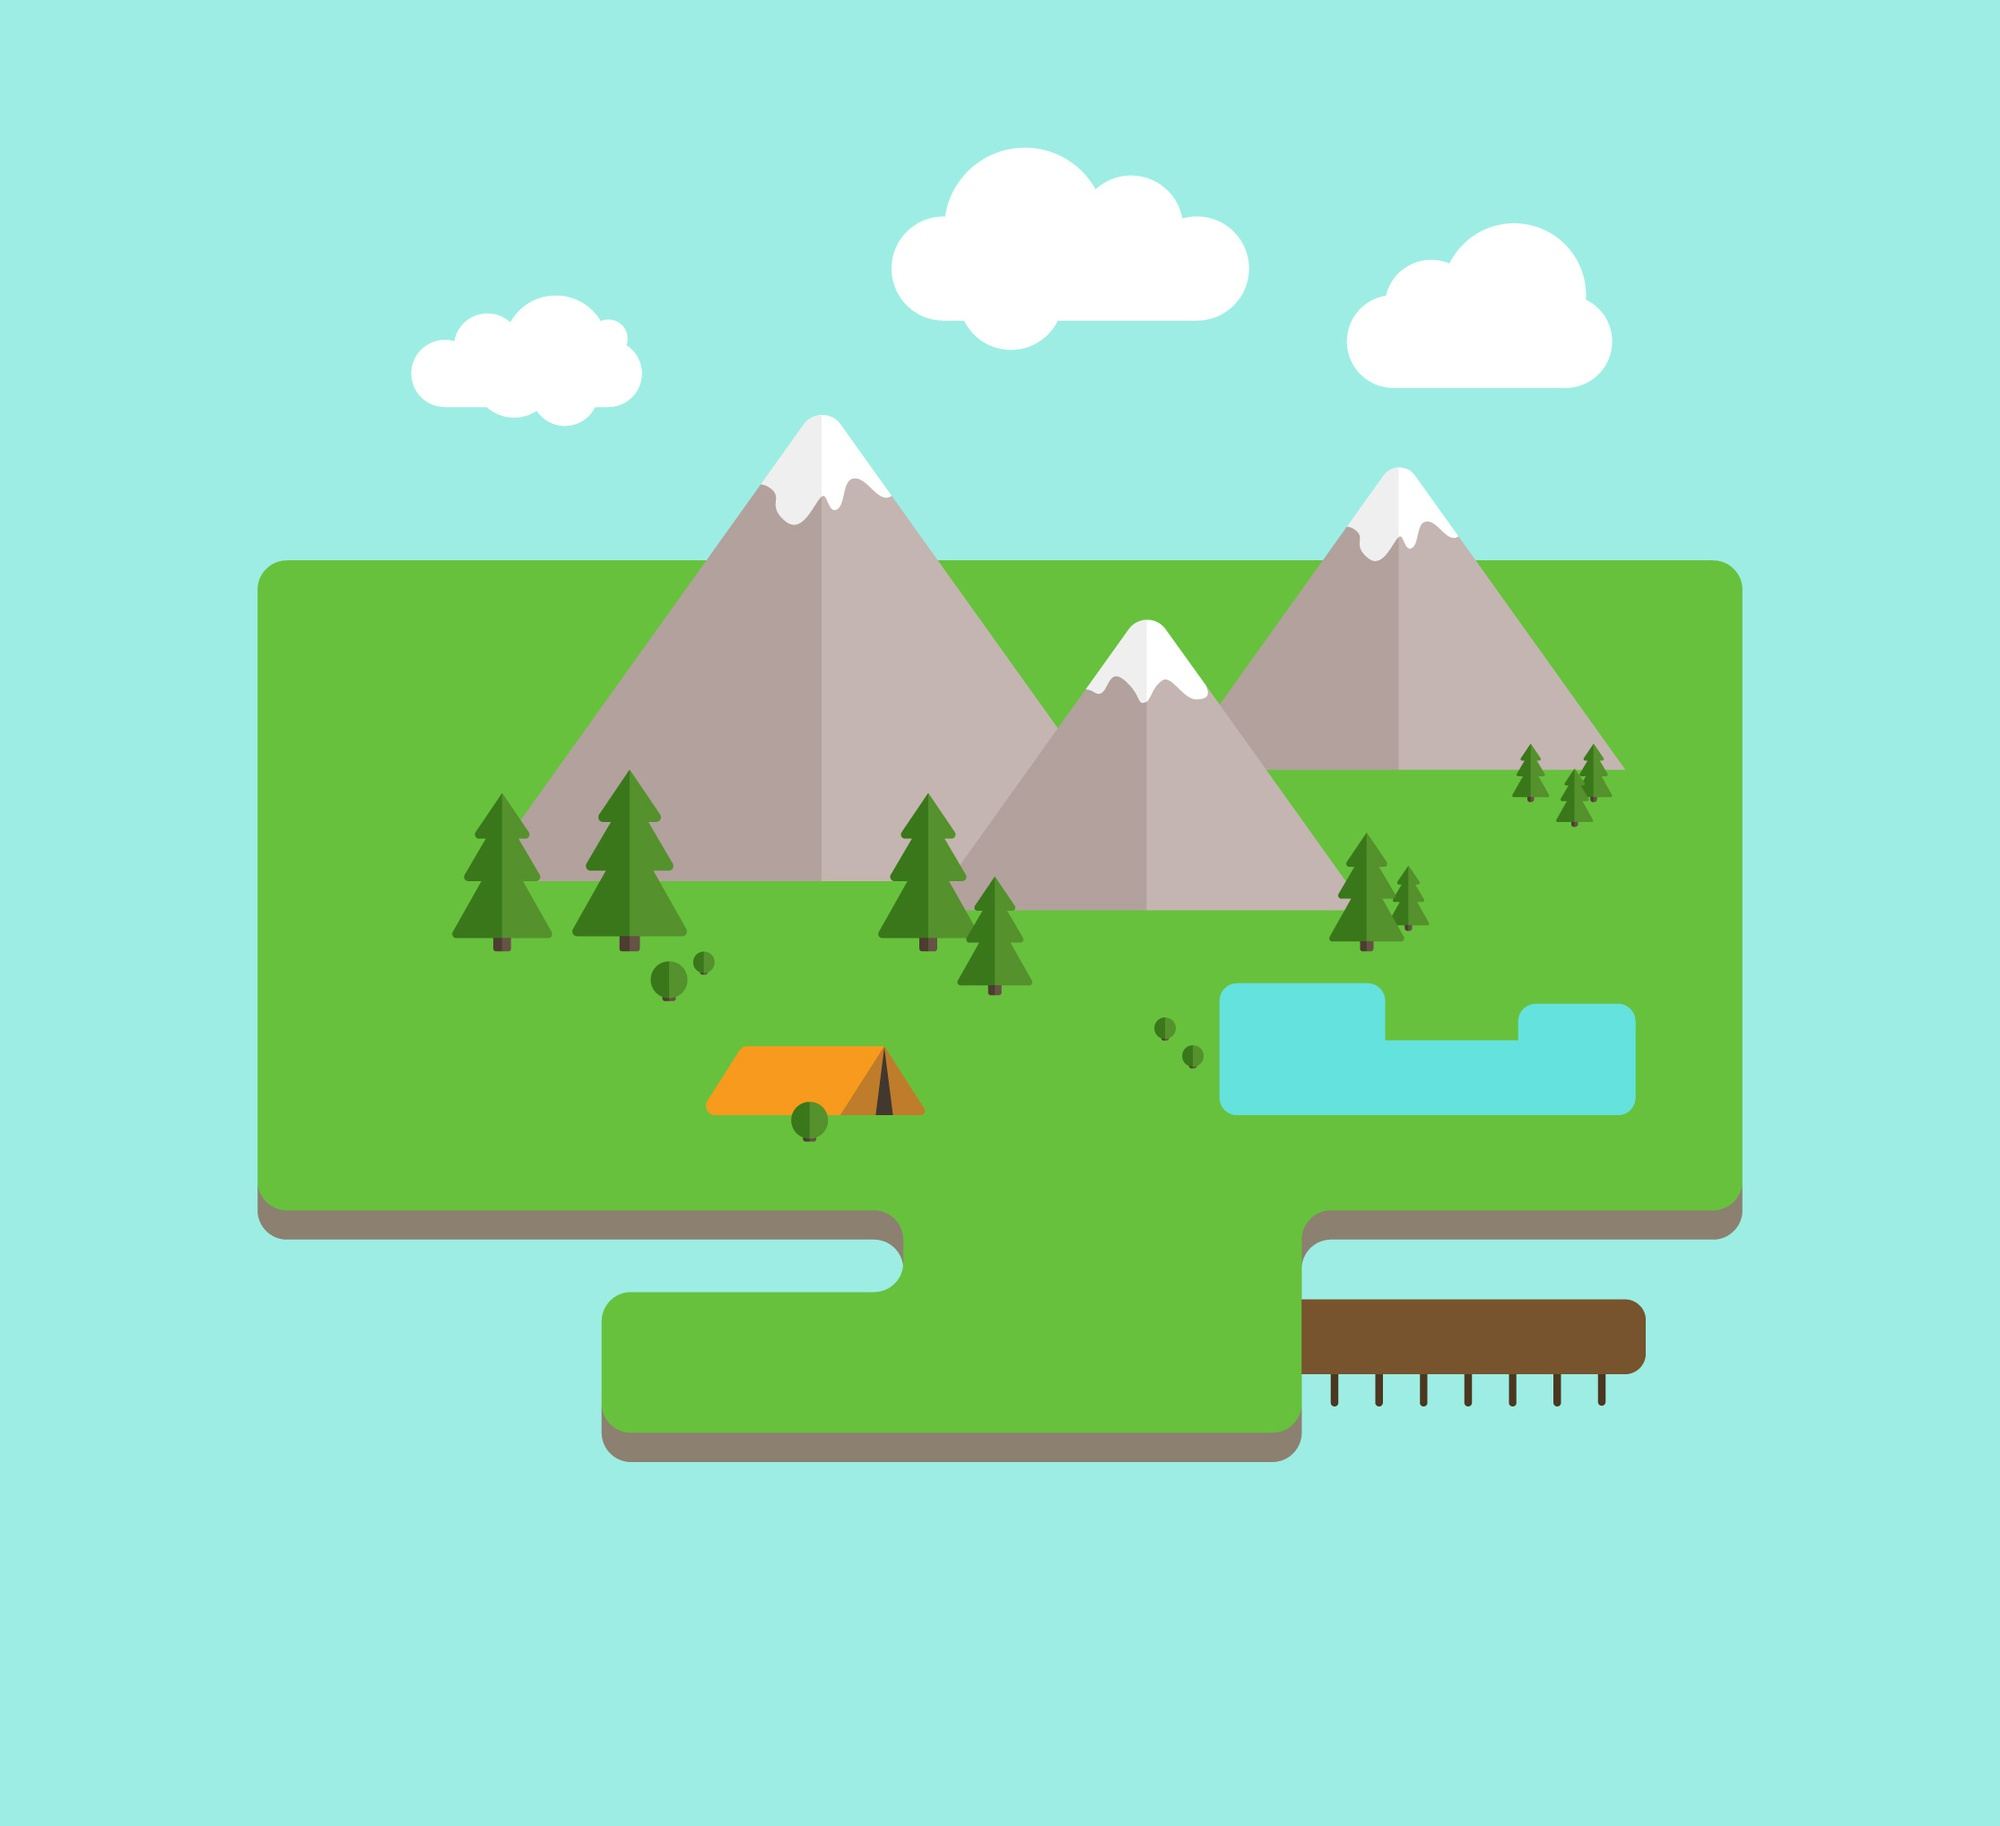 Simple landscape in flat design